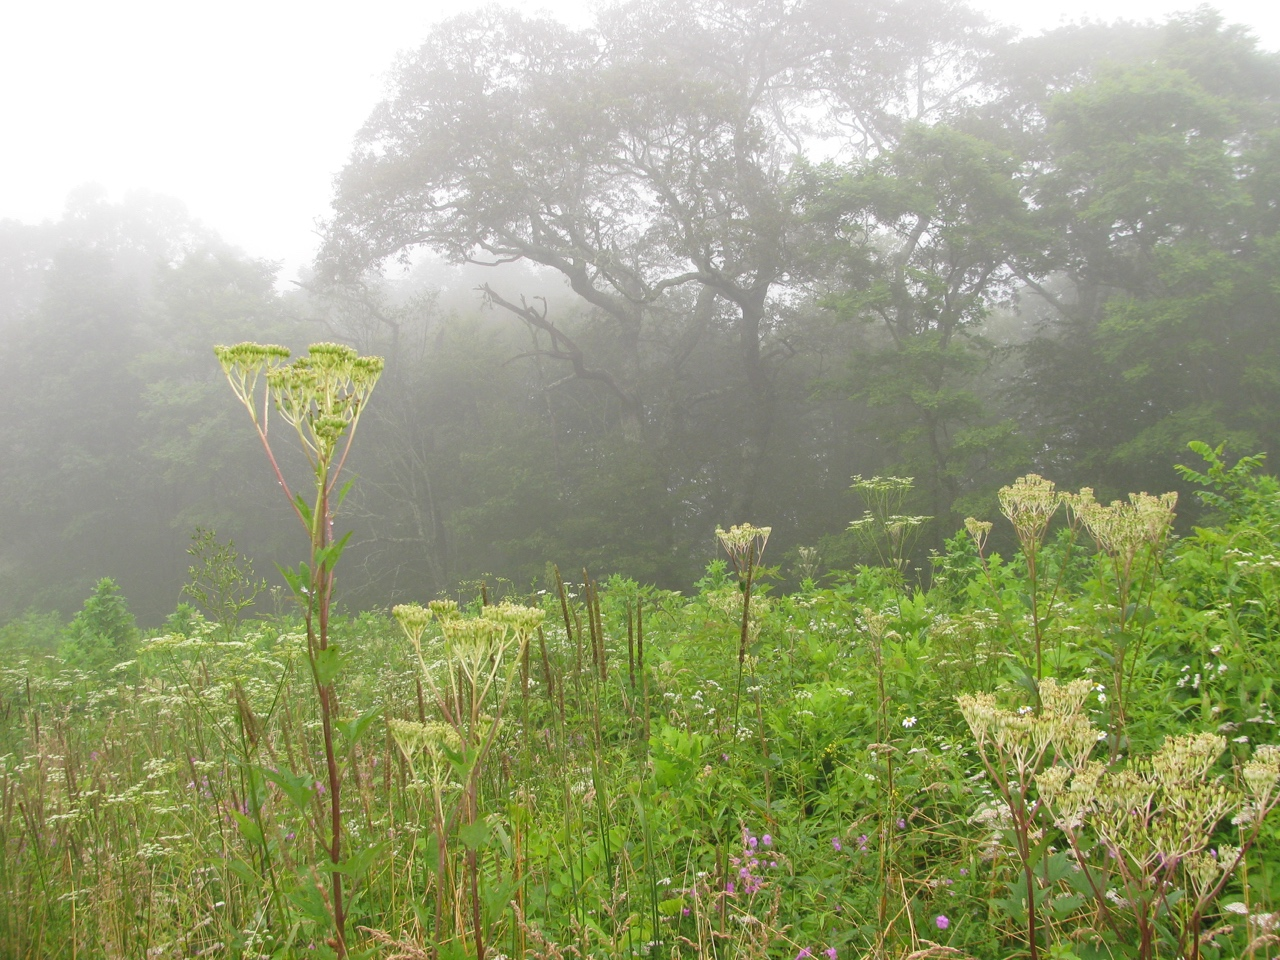 The Scientific Name is Arnoglossum atriplicifolium [= Cacalia atriplicifolia]. You will likely hear them called Pale Indian-plantain. This picture shows the Natural stand of plants of Arnoglossum atriplicifolium [= Cacalia atriplicifolia]